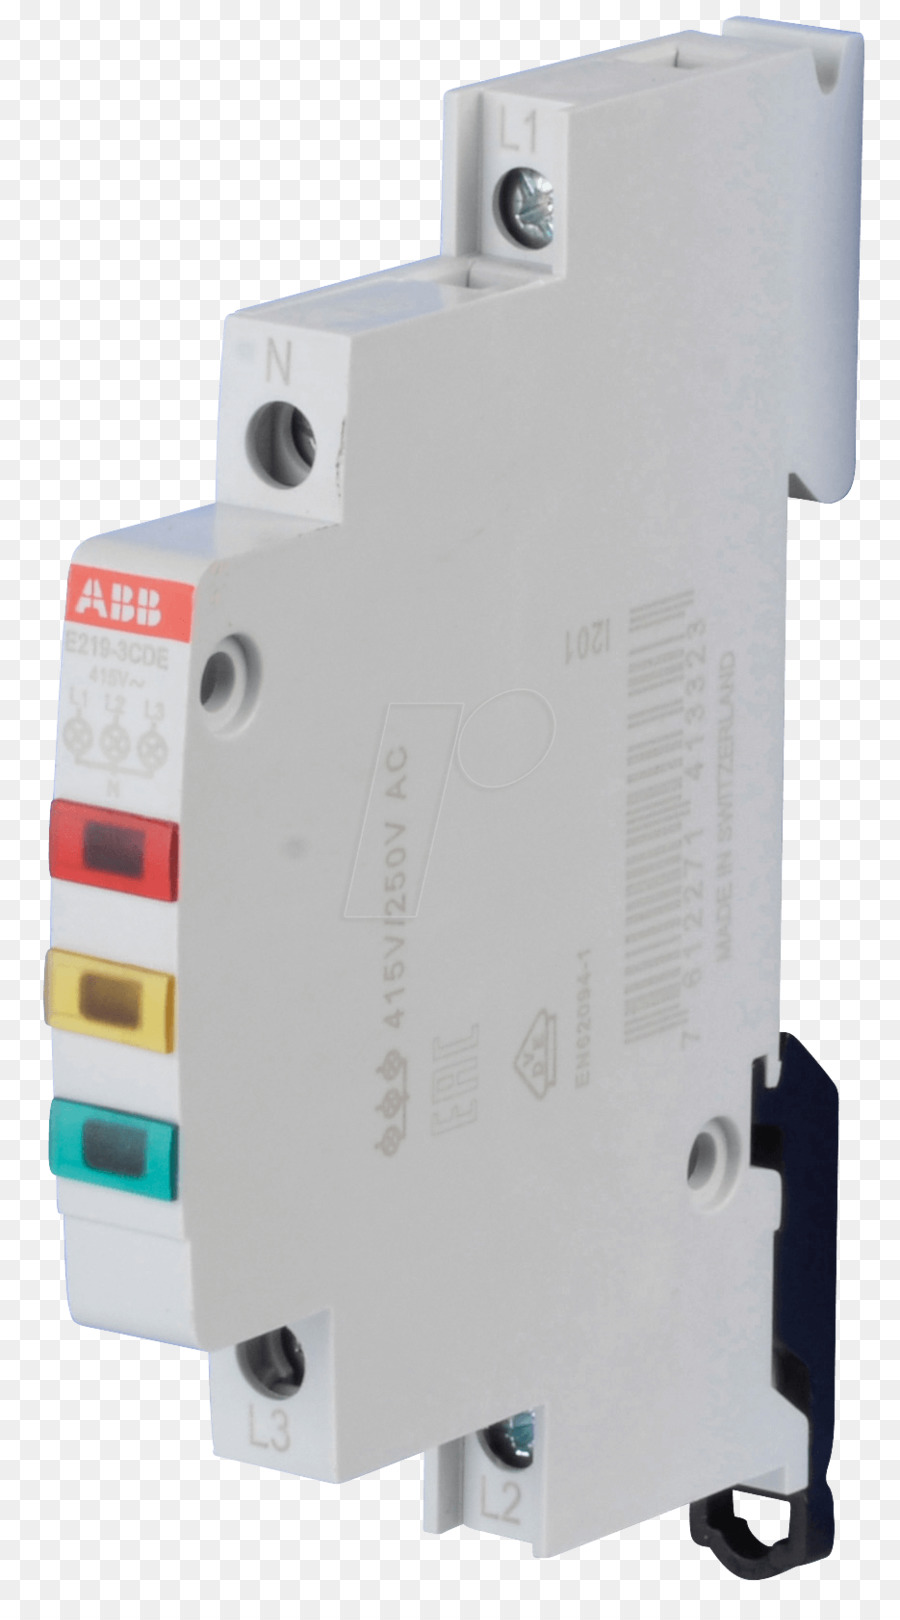 medium resolution of abb indicator light for distribution board e219 3 abb group electrical switches din rail